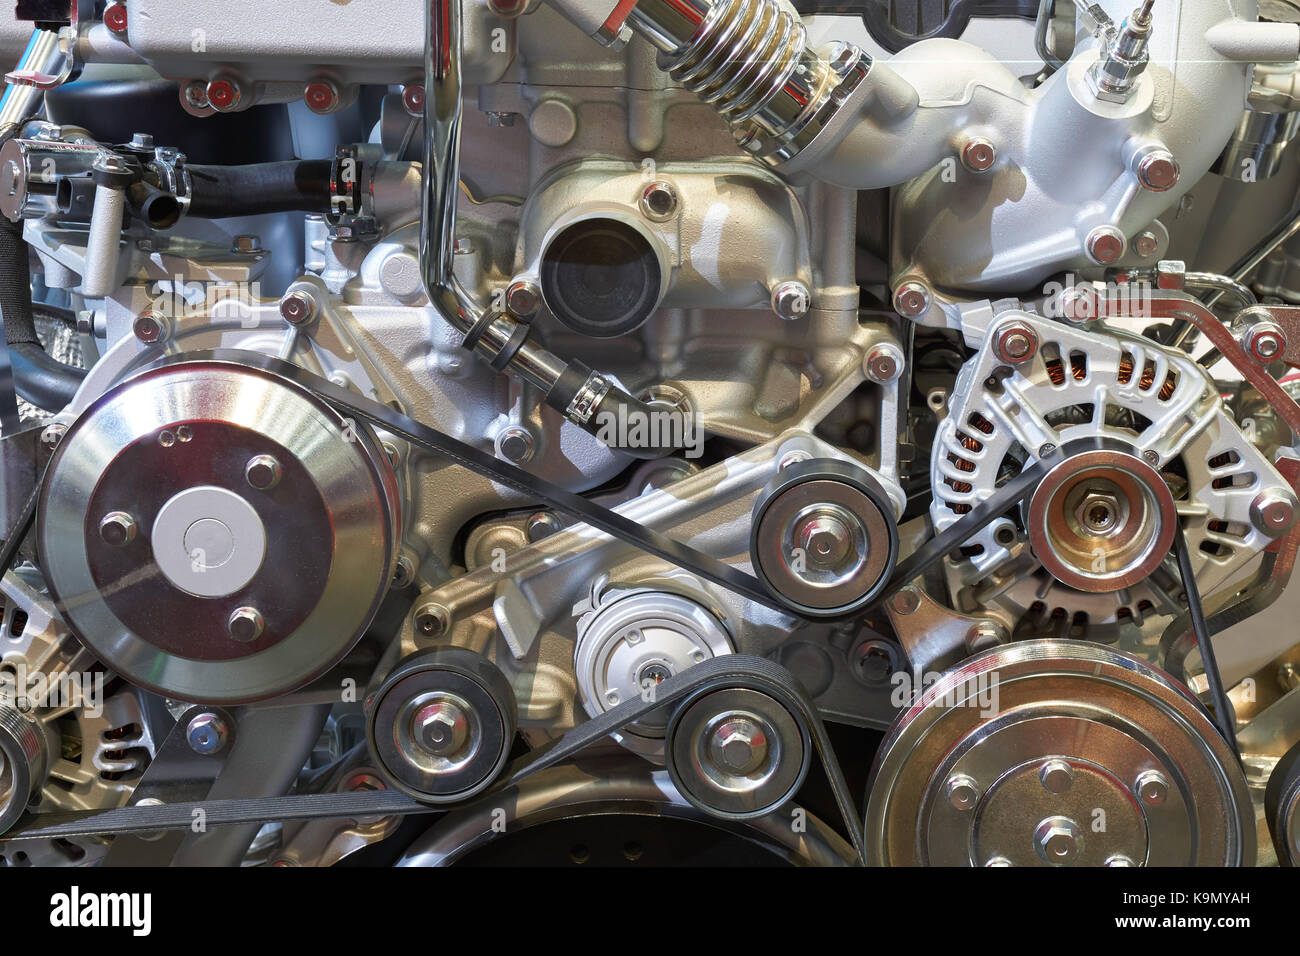 Front view of internal combustion engine of the truck Stock Photo